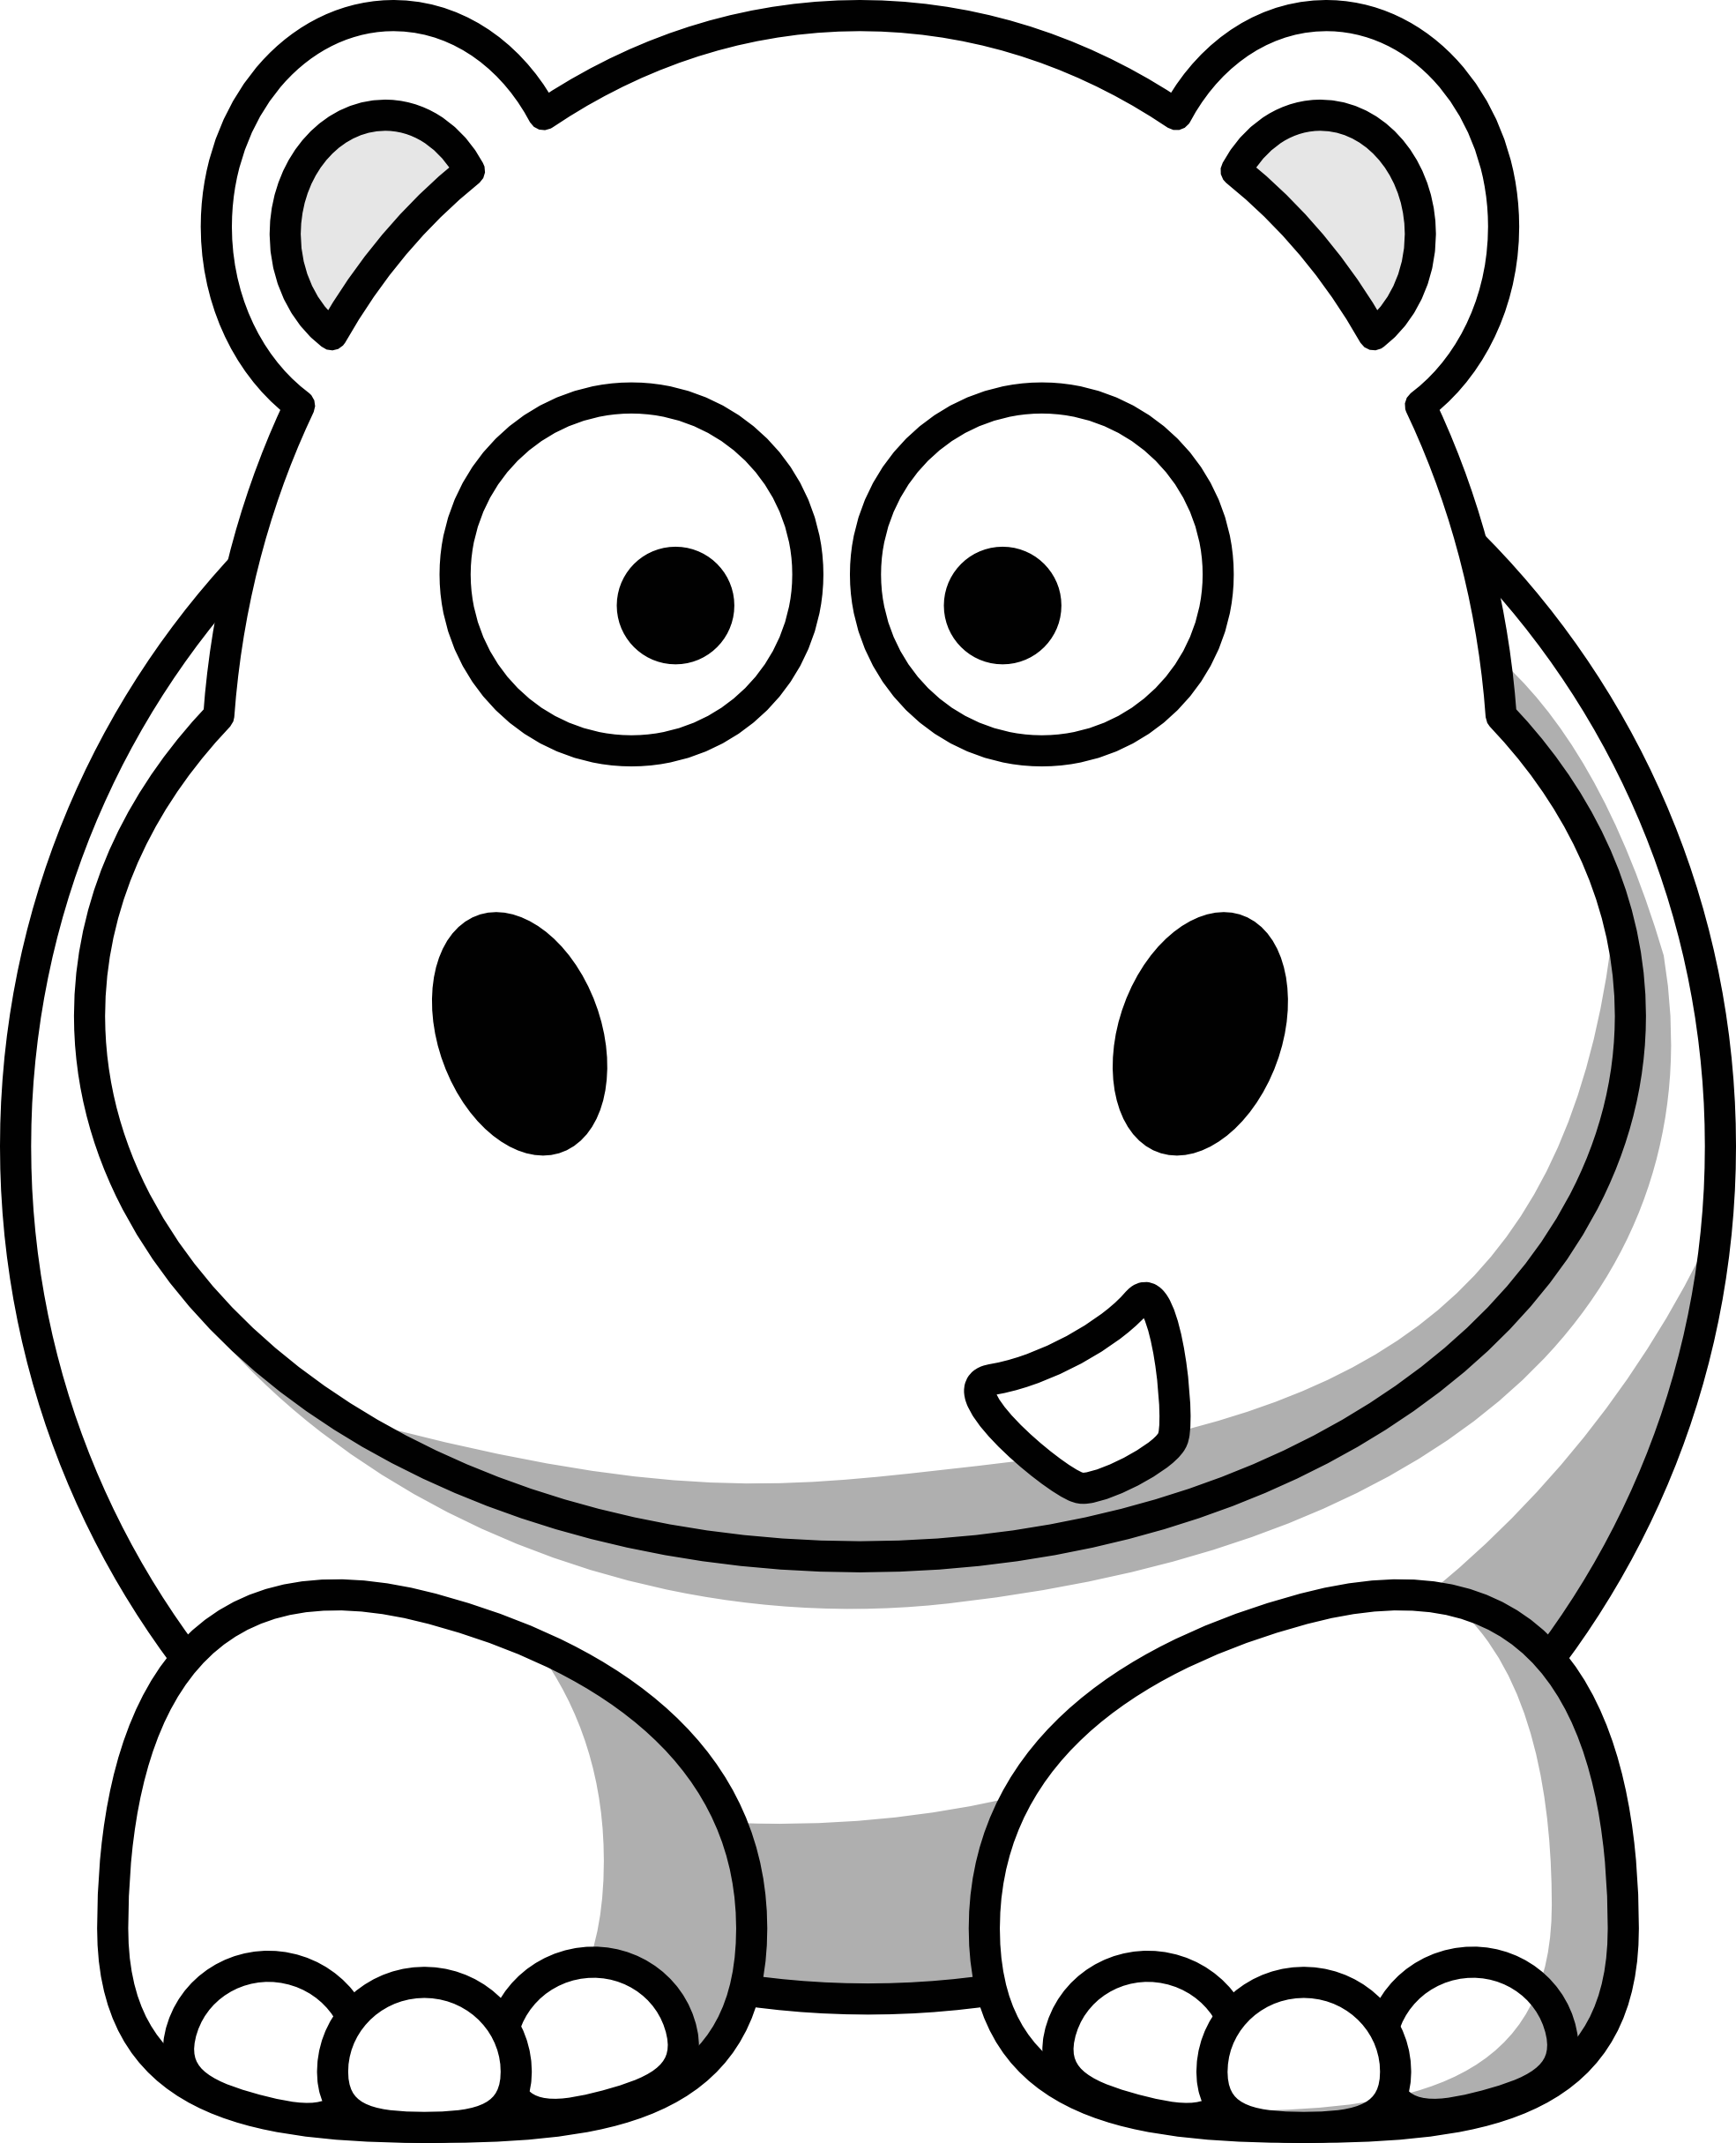 library Grinch clipart black and white. Image of baby hippo